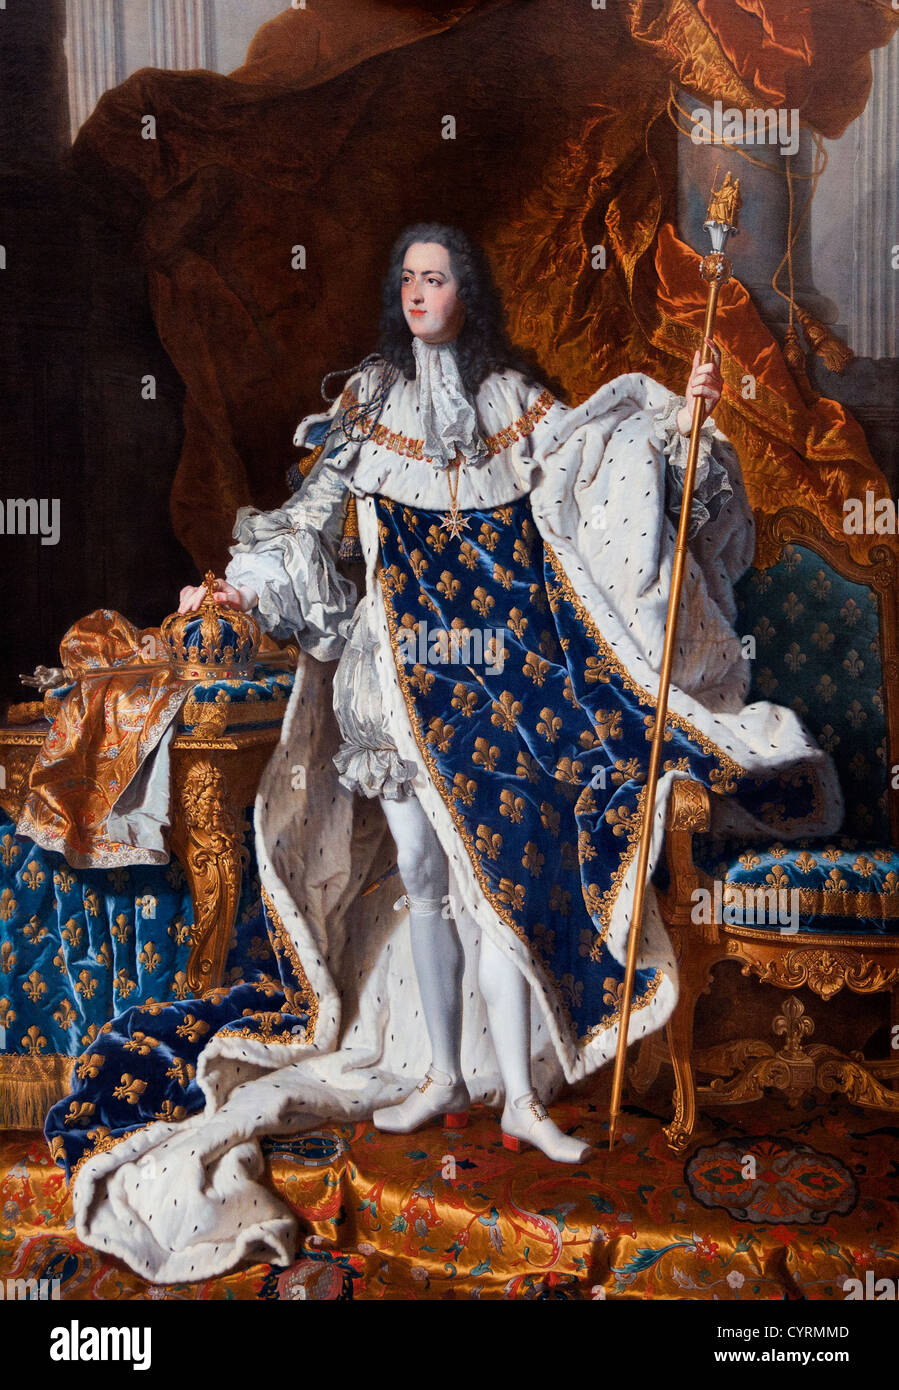 King Roi Louis XV 1710-74 in Coronation Robes 1742  Rigaud Hyacinthe 1659-1743 France French - Stock Image